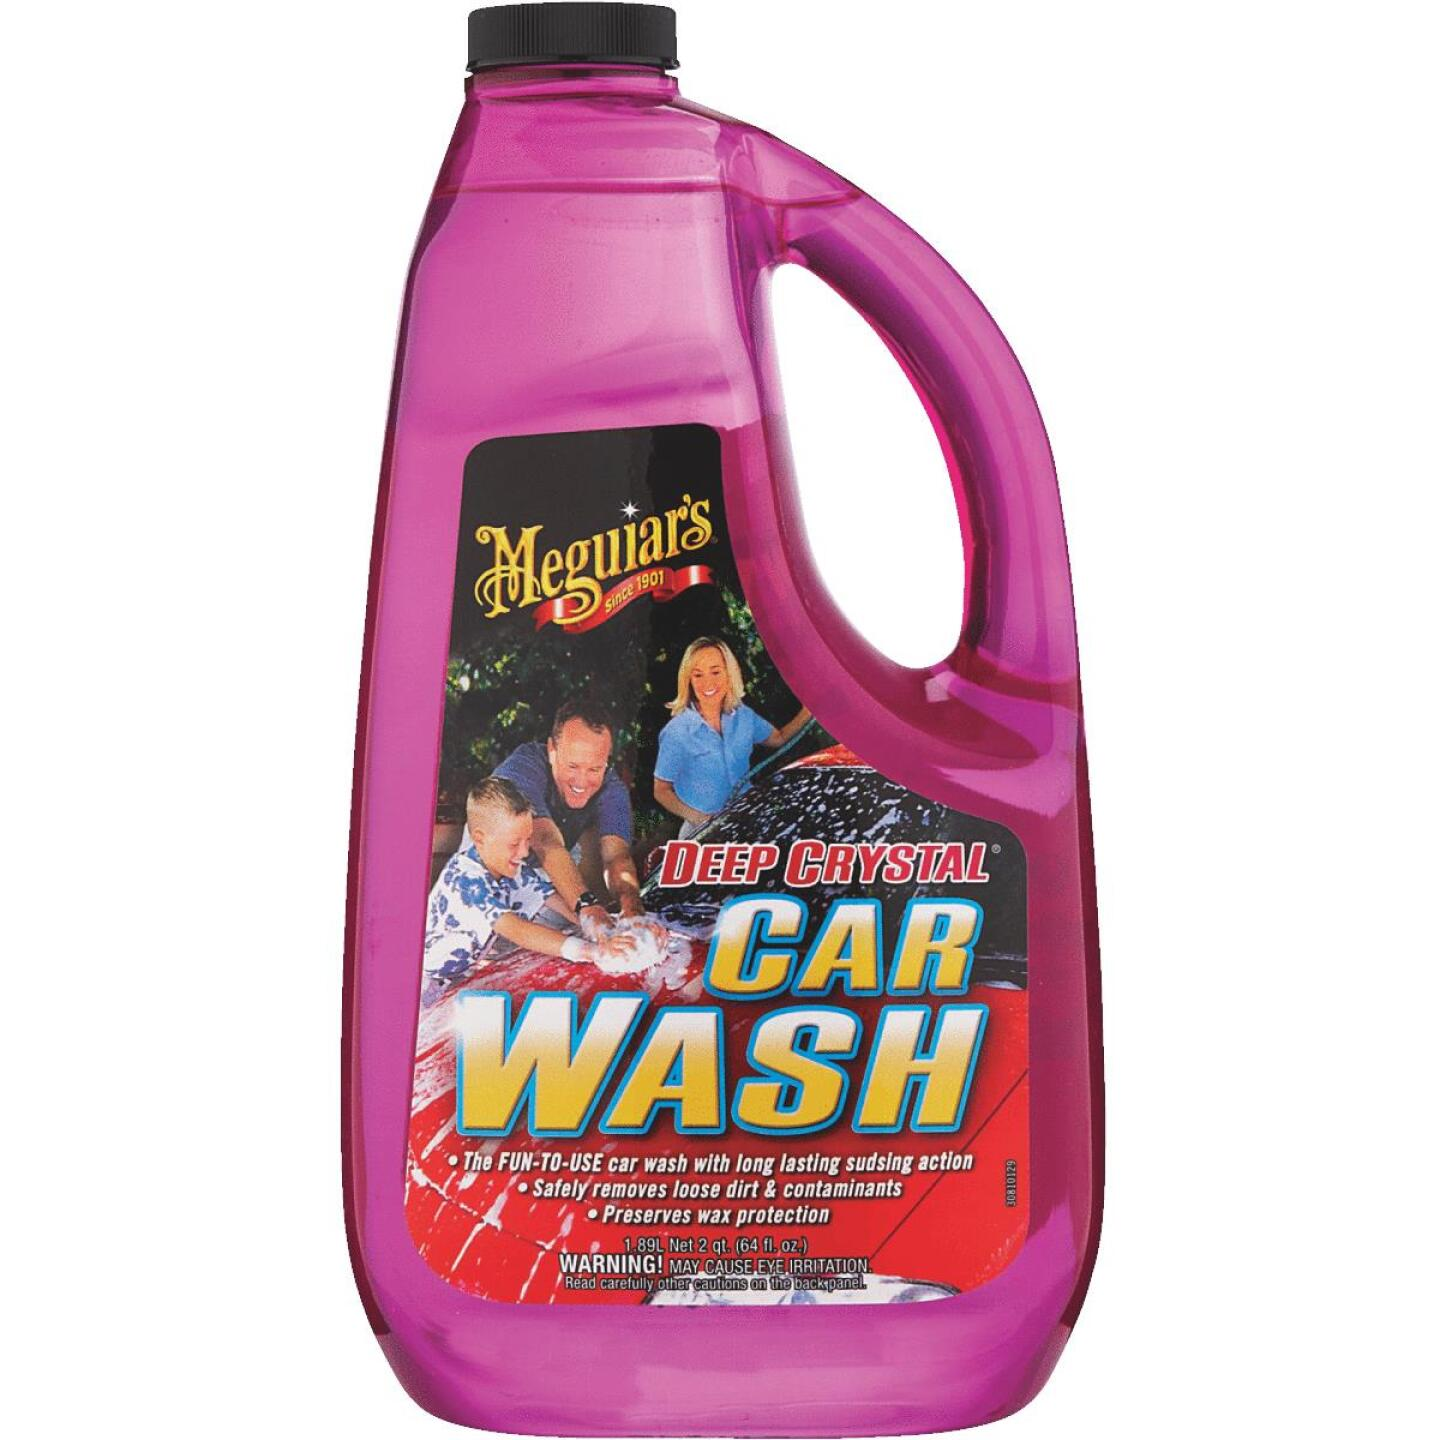 Meguiars Deep Crystal Liquid 64 oz Car Wash Image 1